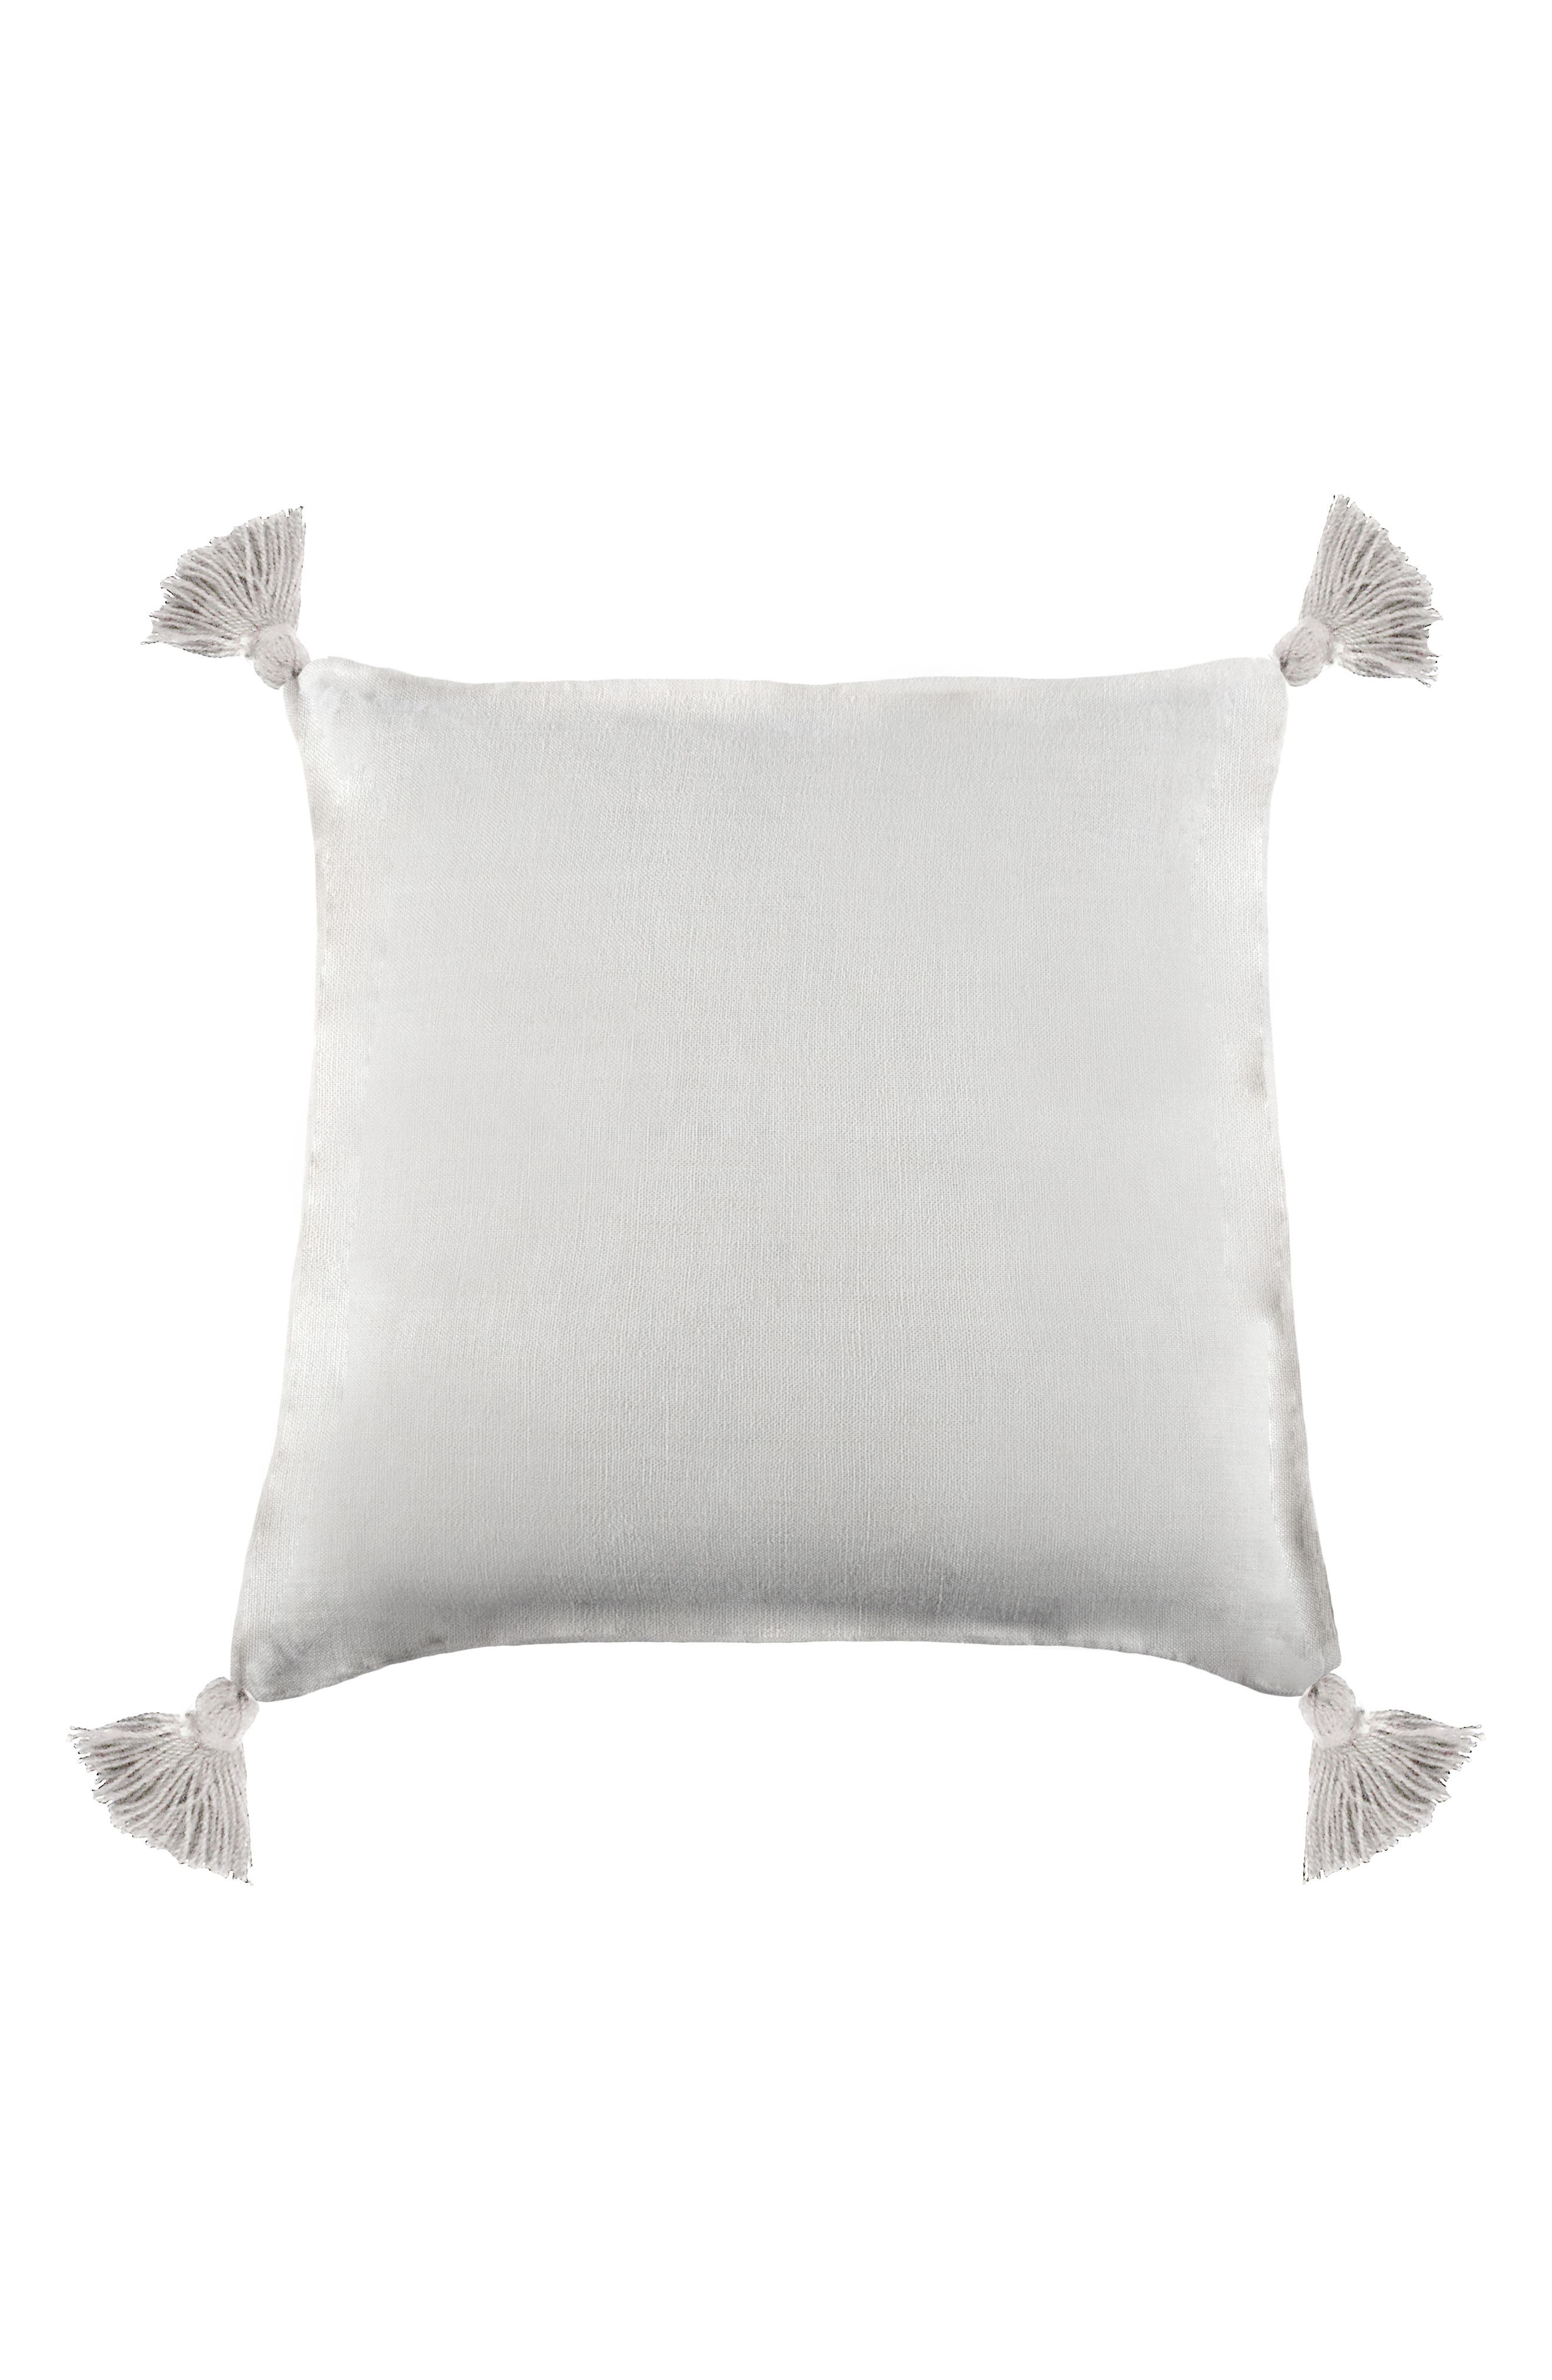 POM POM AT HOME Montauk Tassel Accent Pillow, Main, color, WHITE